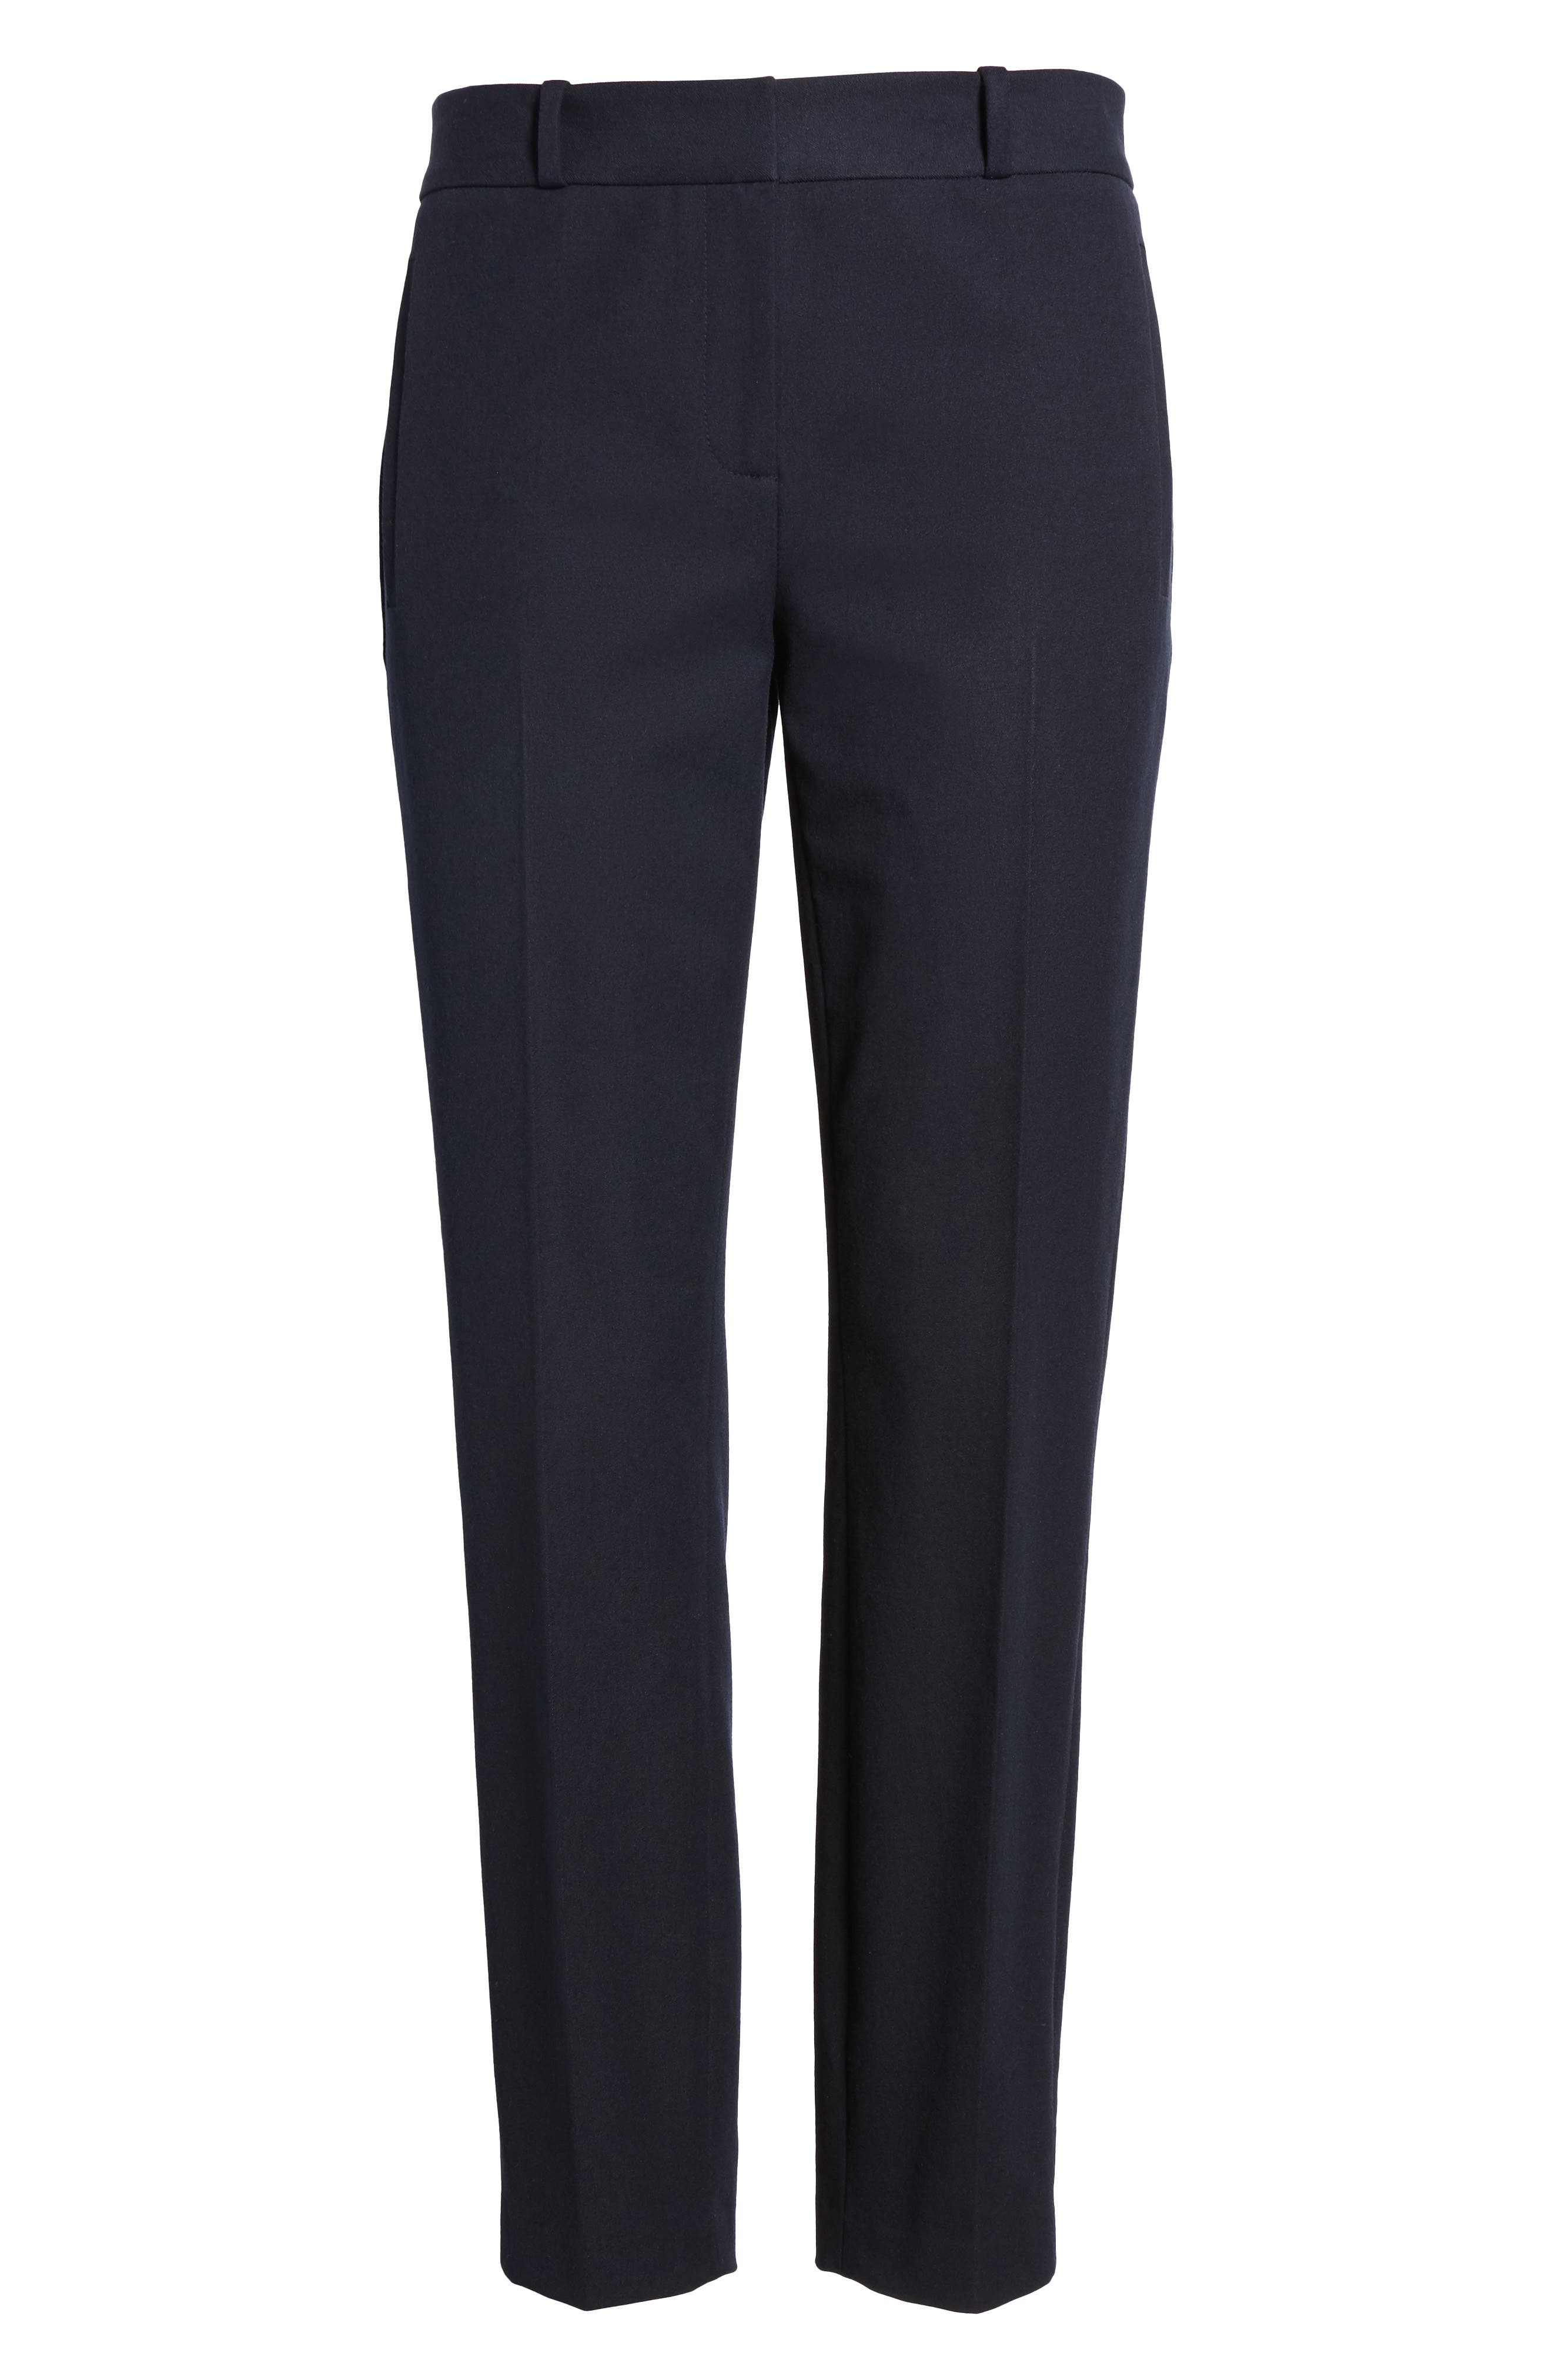 Welt Pocket Slim Leg Crop Pants,                             Alternate thumbnail 6, color,                             Navy Night